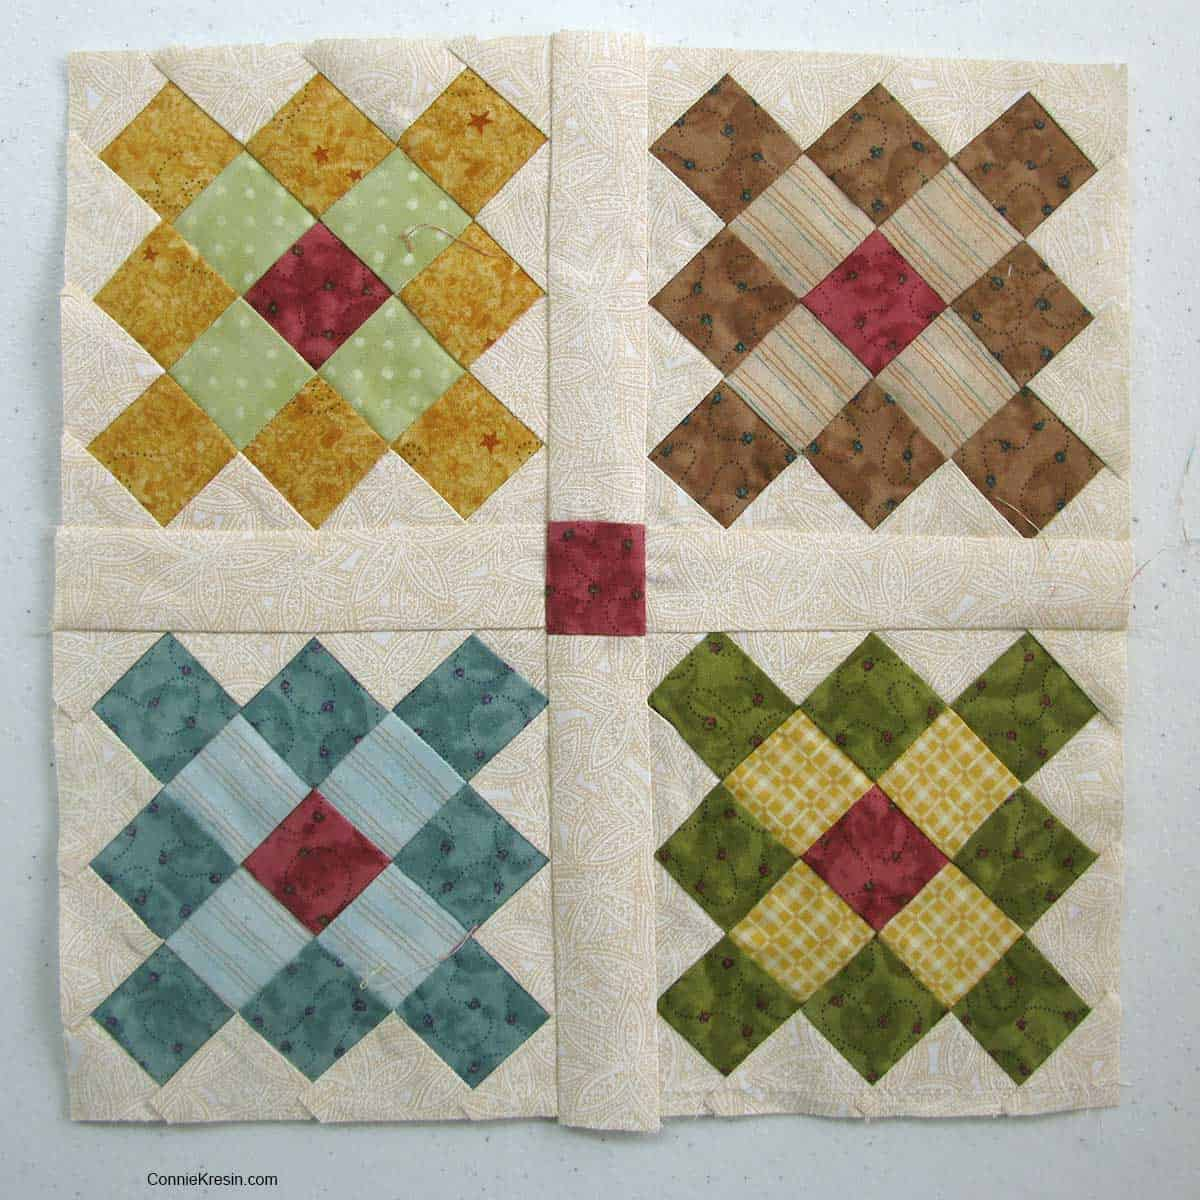 Granny Square quilt block project